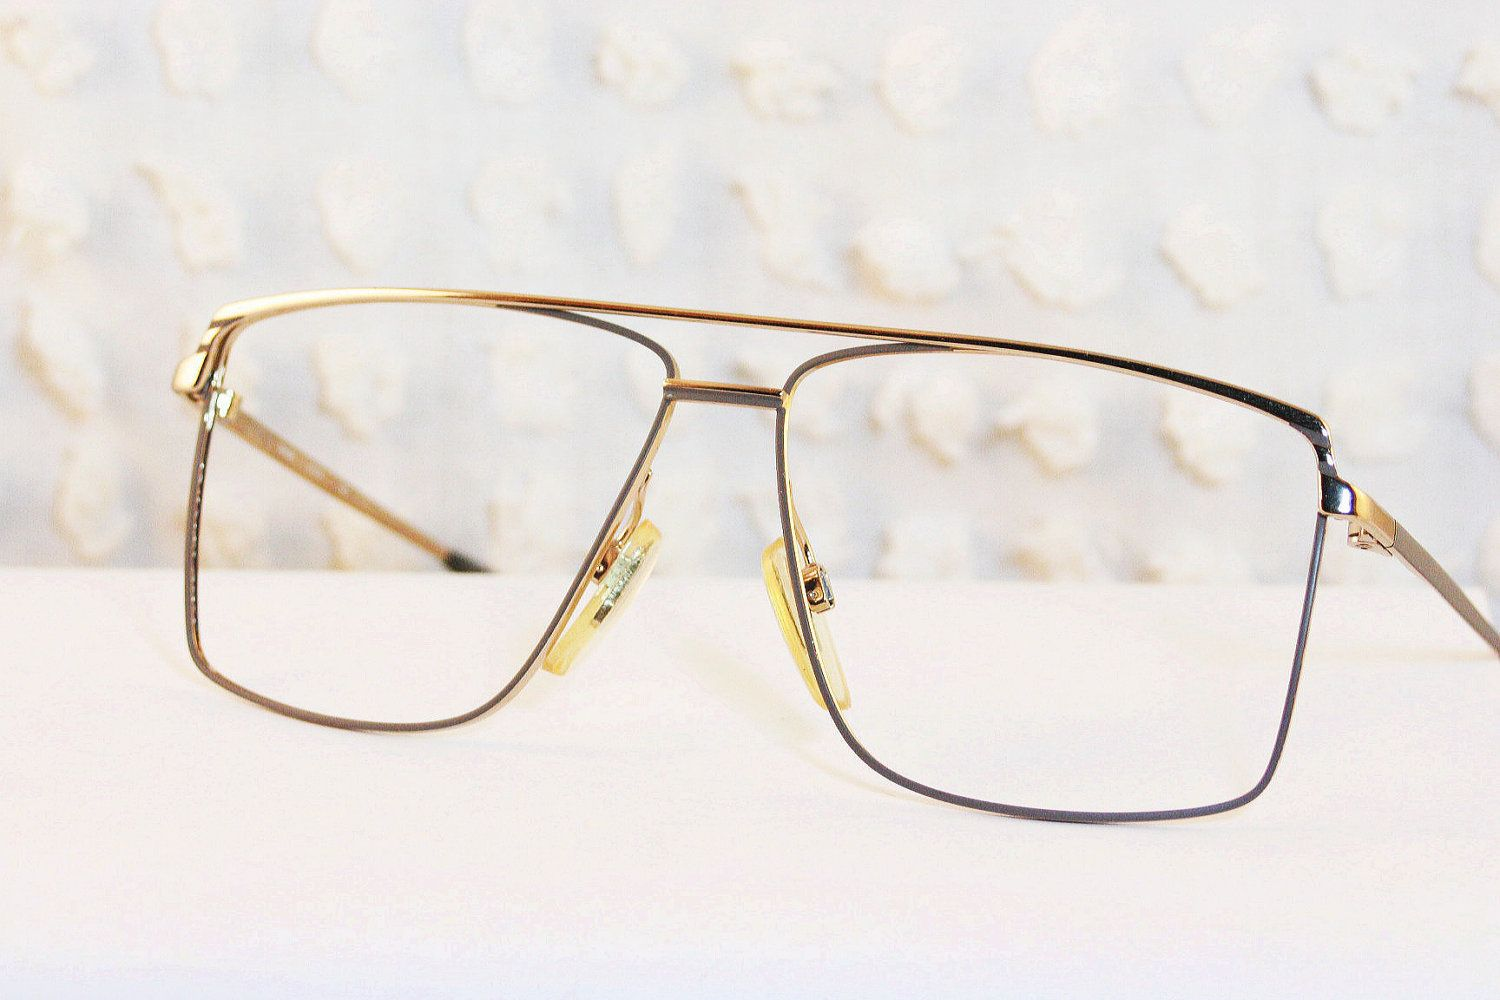 a944925c0e7 80s Mens Glasses 1980 s Aviator Eyeglasses Metal Wire Rim Frame Two Tone  Finish 58 13 NOS by Univis Optical.  47.00